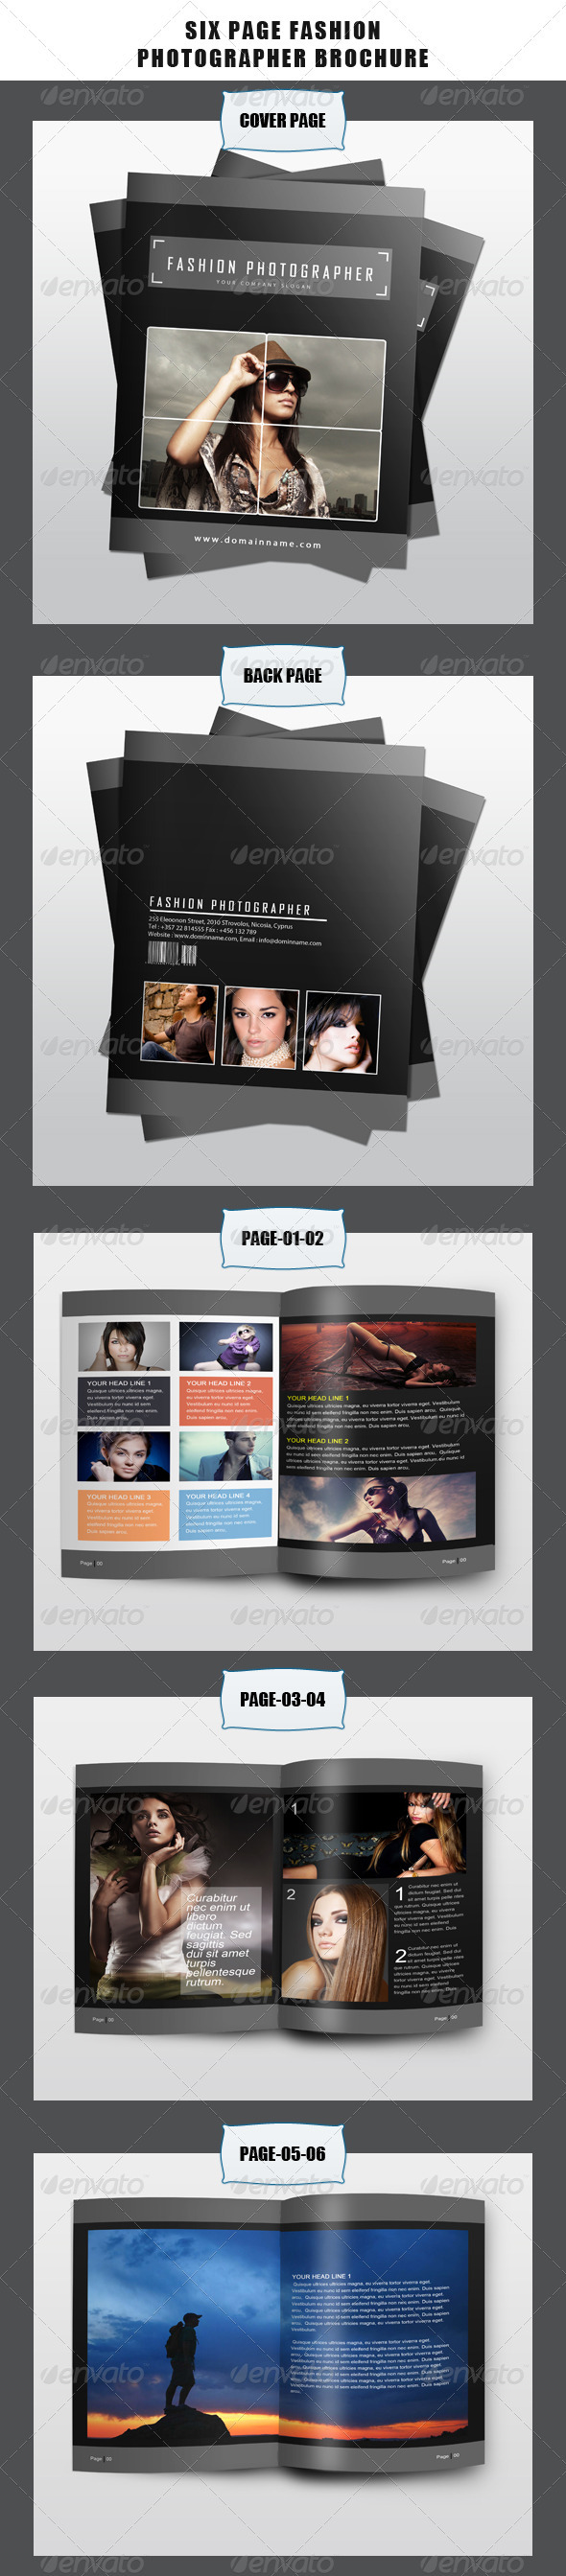 GraphicRiver Six Page Fashion Photographer Brochure 3579758